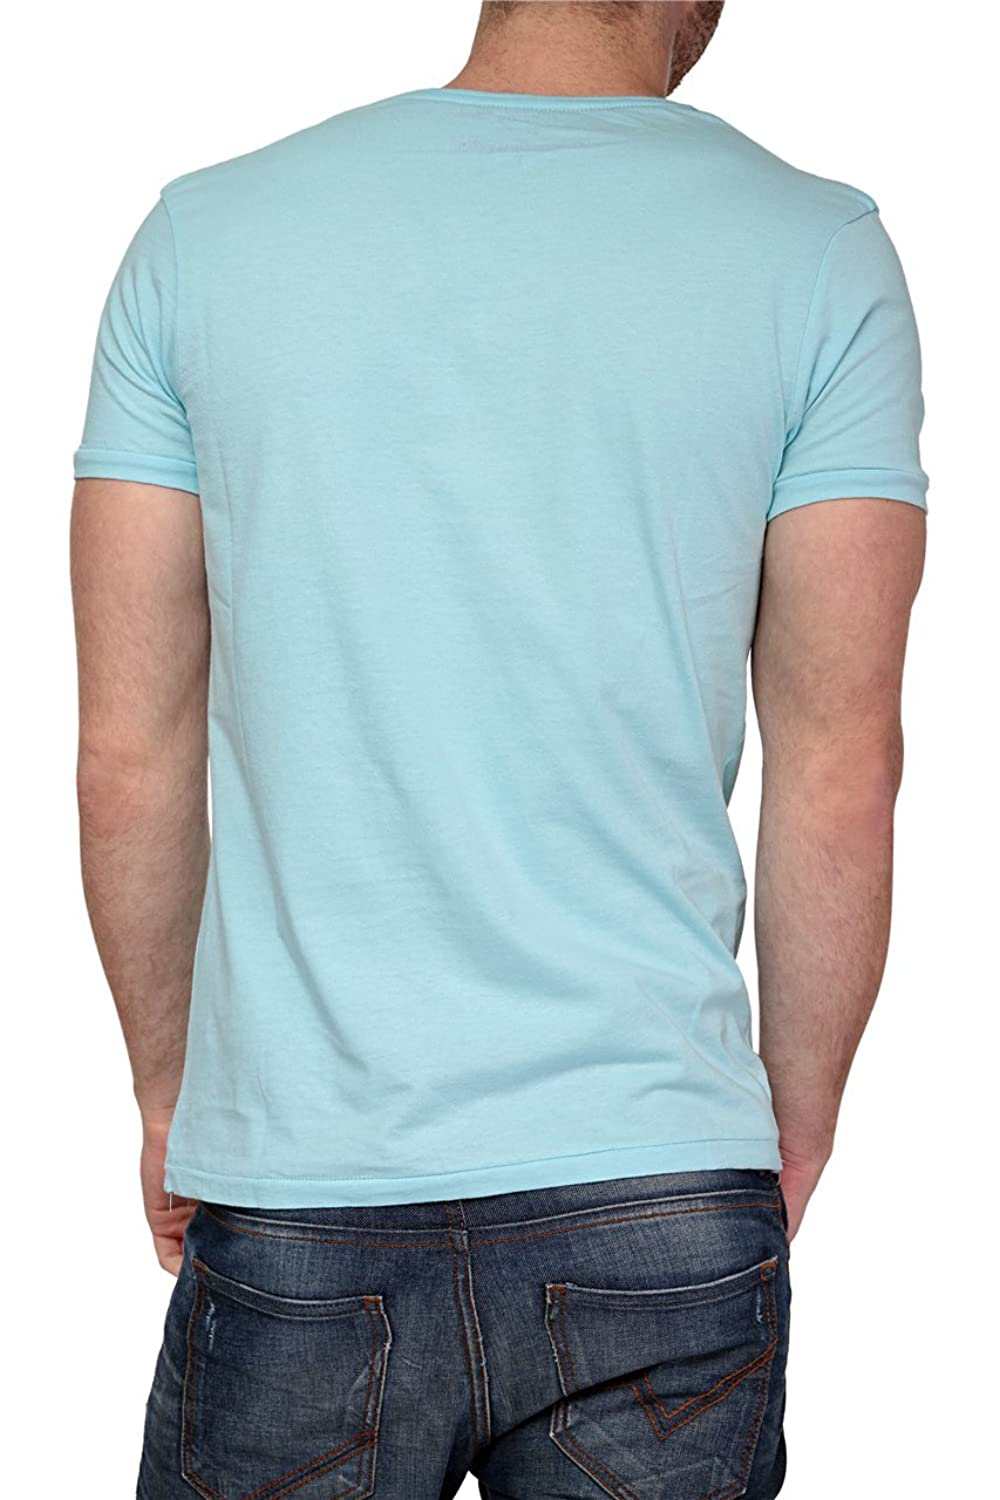 Phazz Brand Munich Graphic Tee TERRY, Color: Light Blue